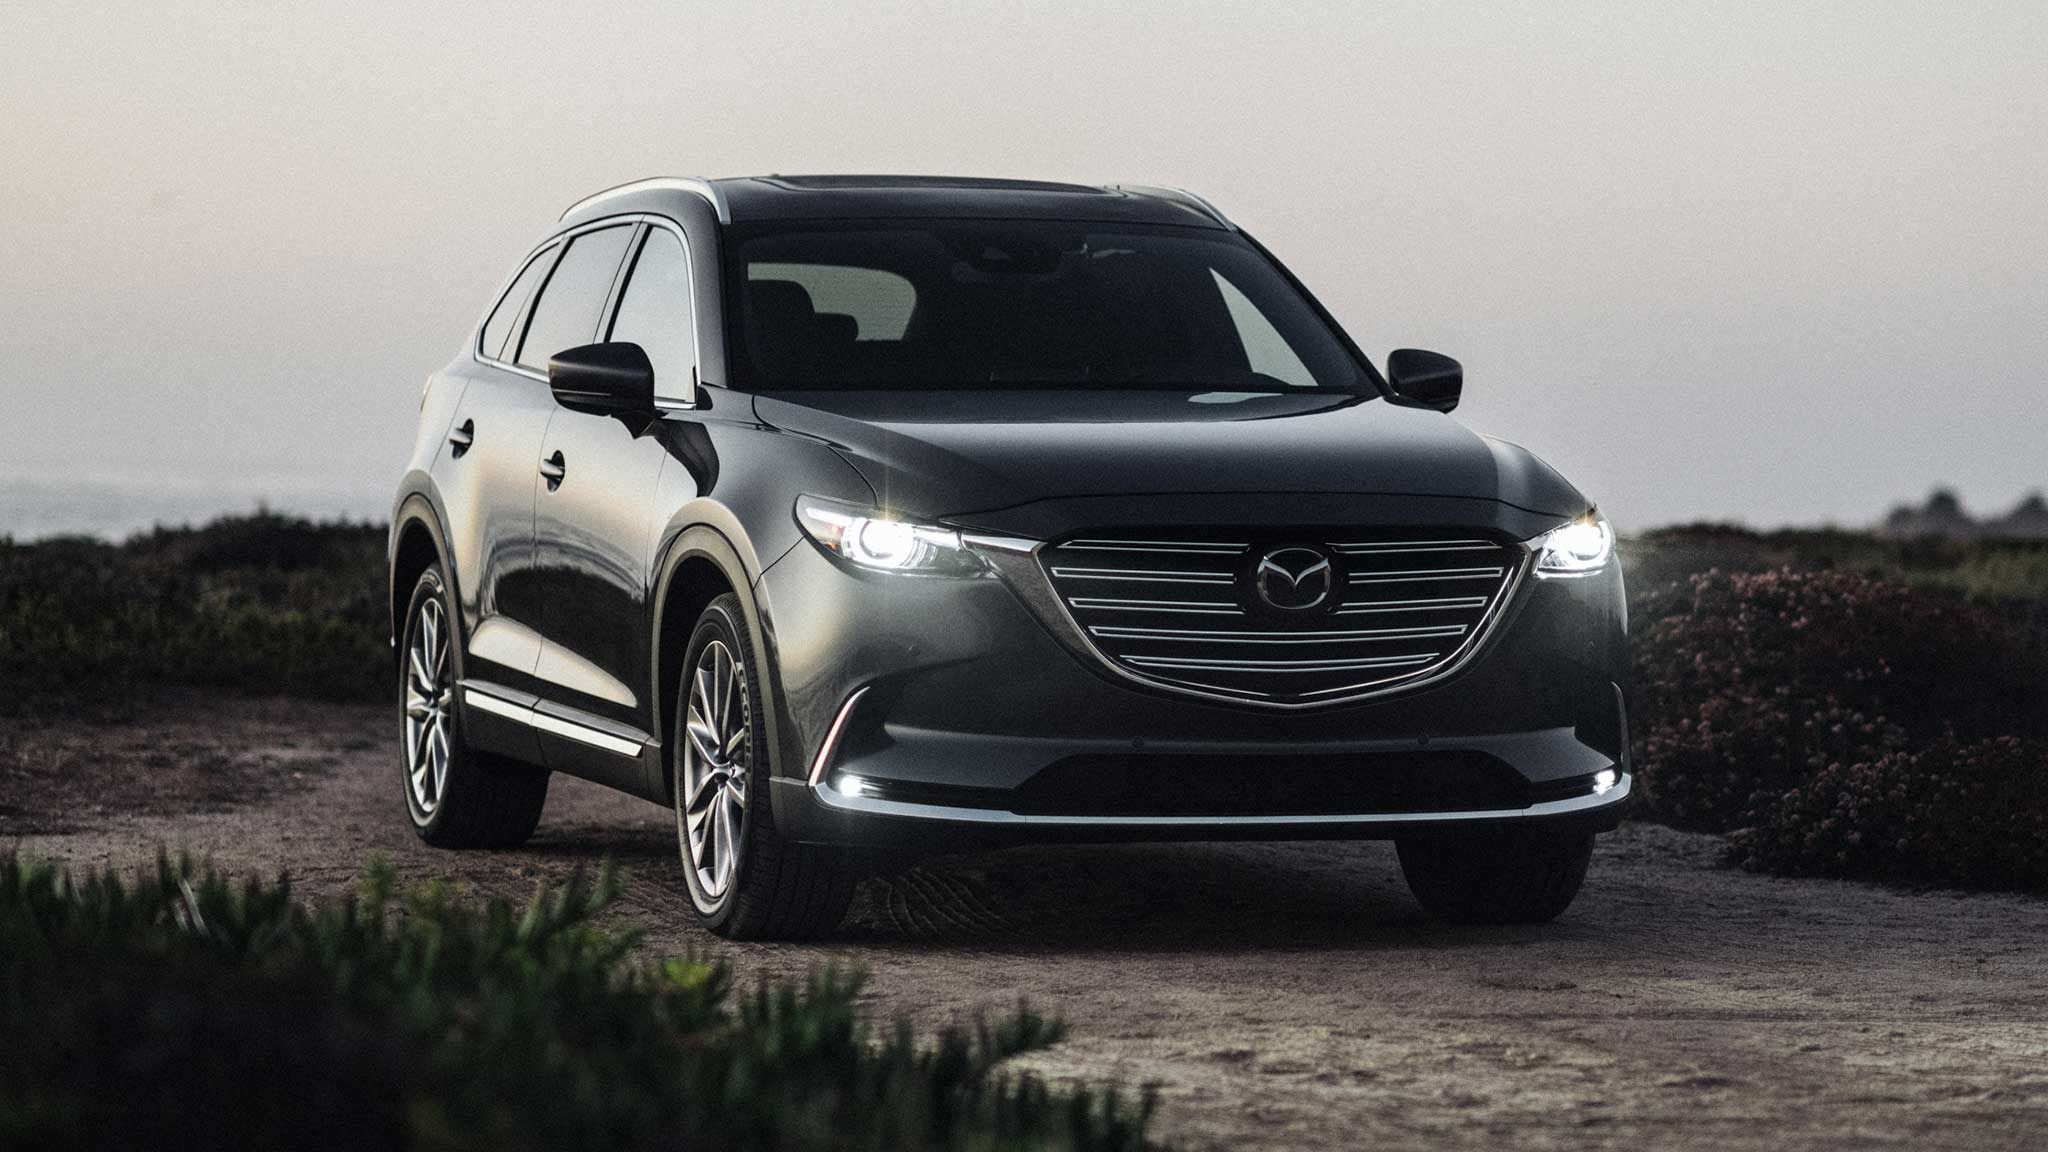 What's New On the 2020 Mazda CX9? in 2020 Mazda cx 9